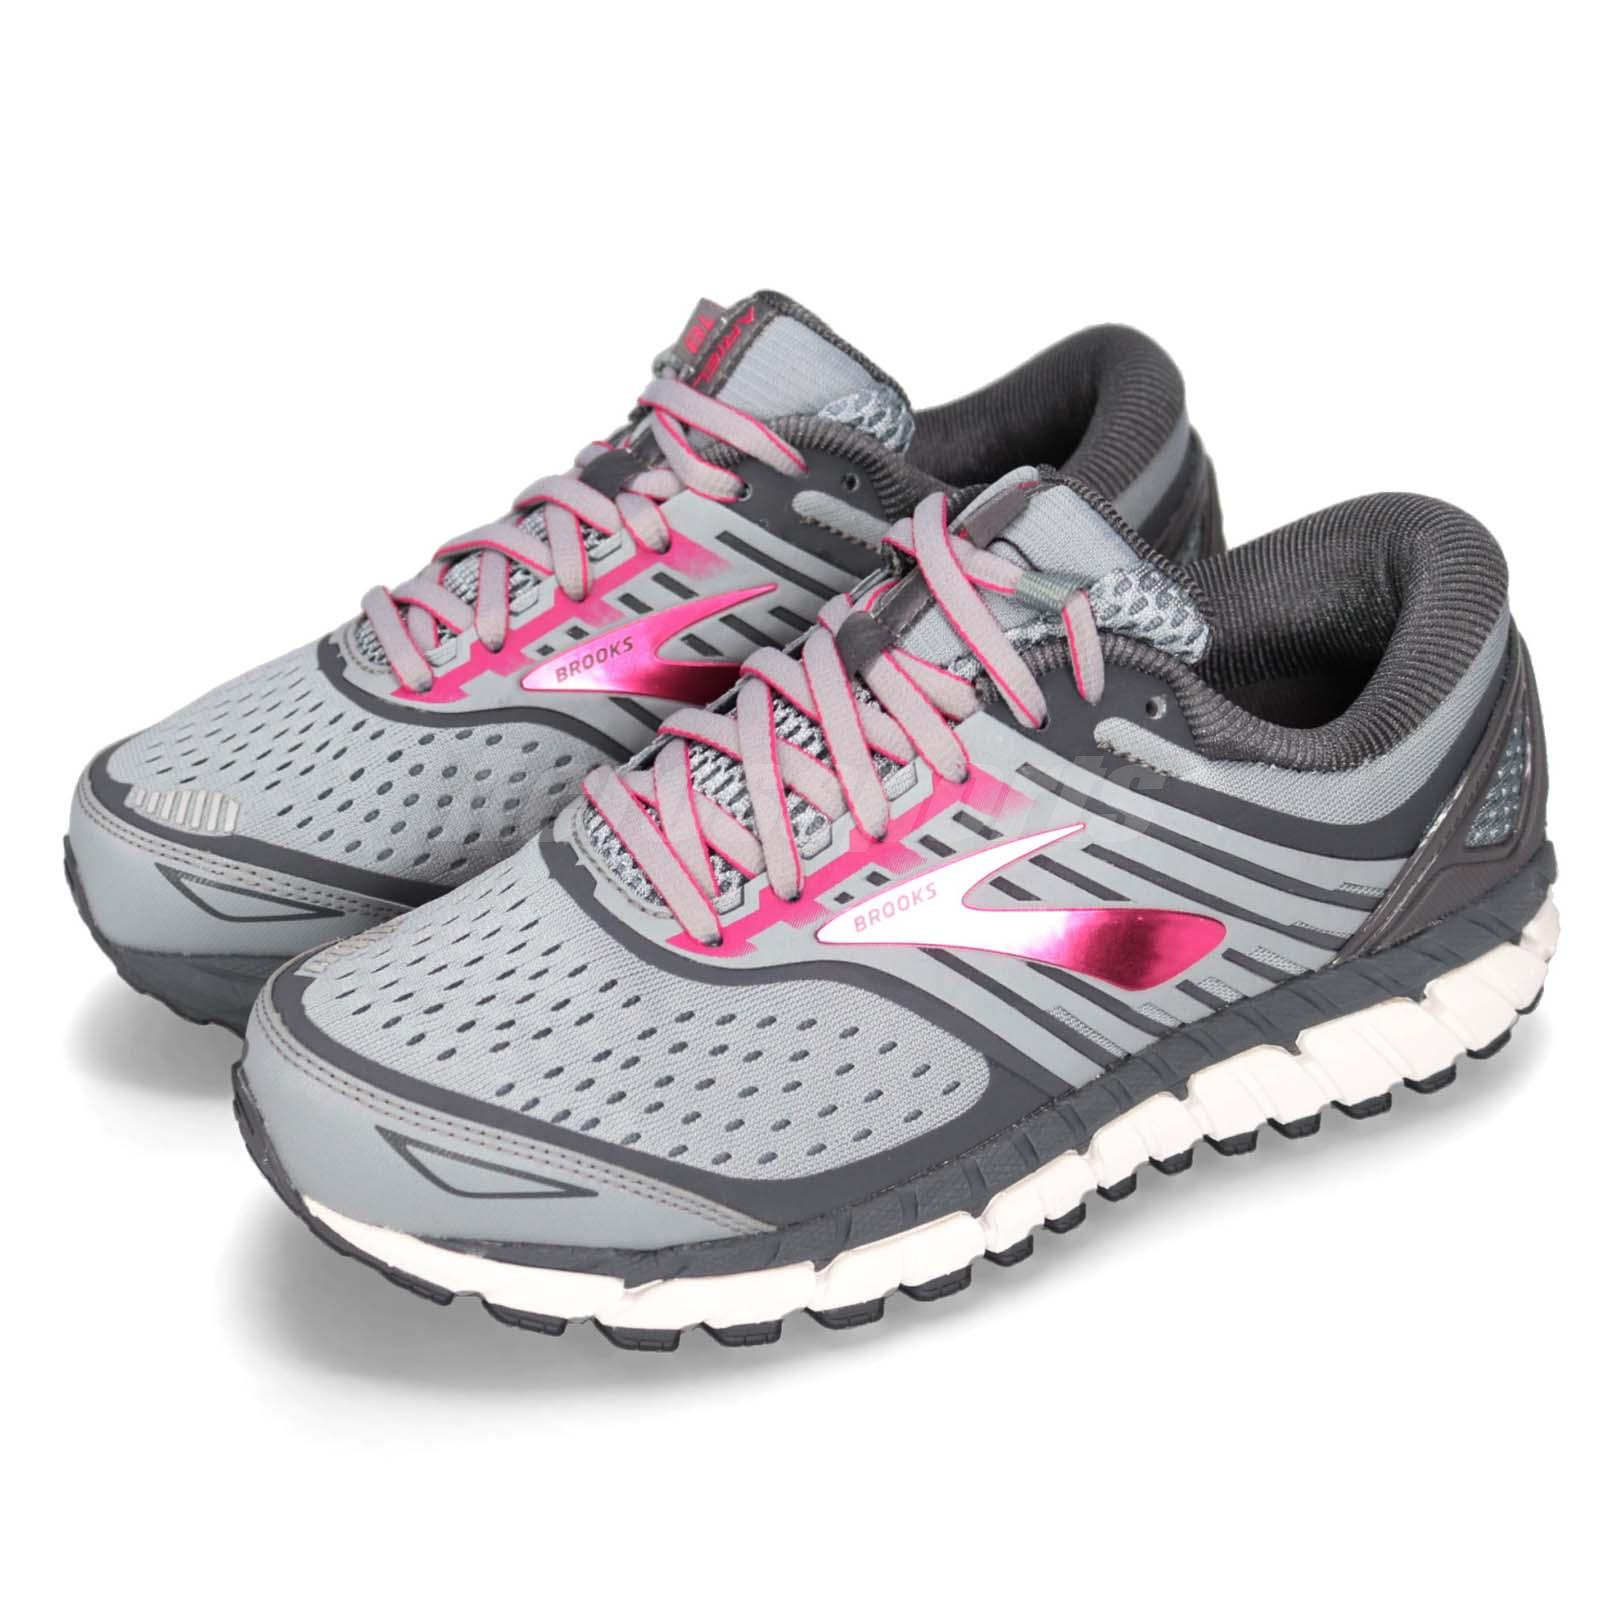 337b58dd4ee Details about Brooks Ariel 18 Grey Pink Women Running Training Shoes  Sneakers 120271 2E